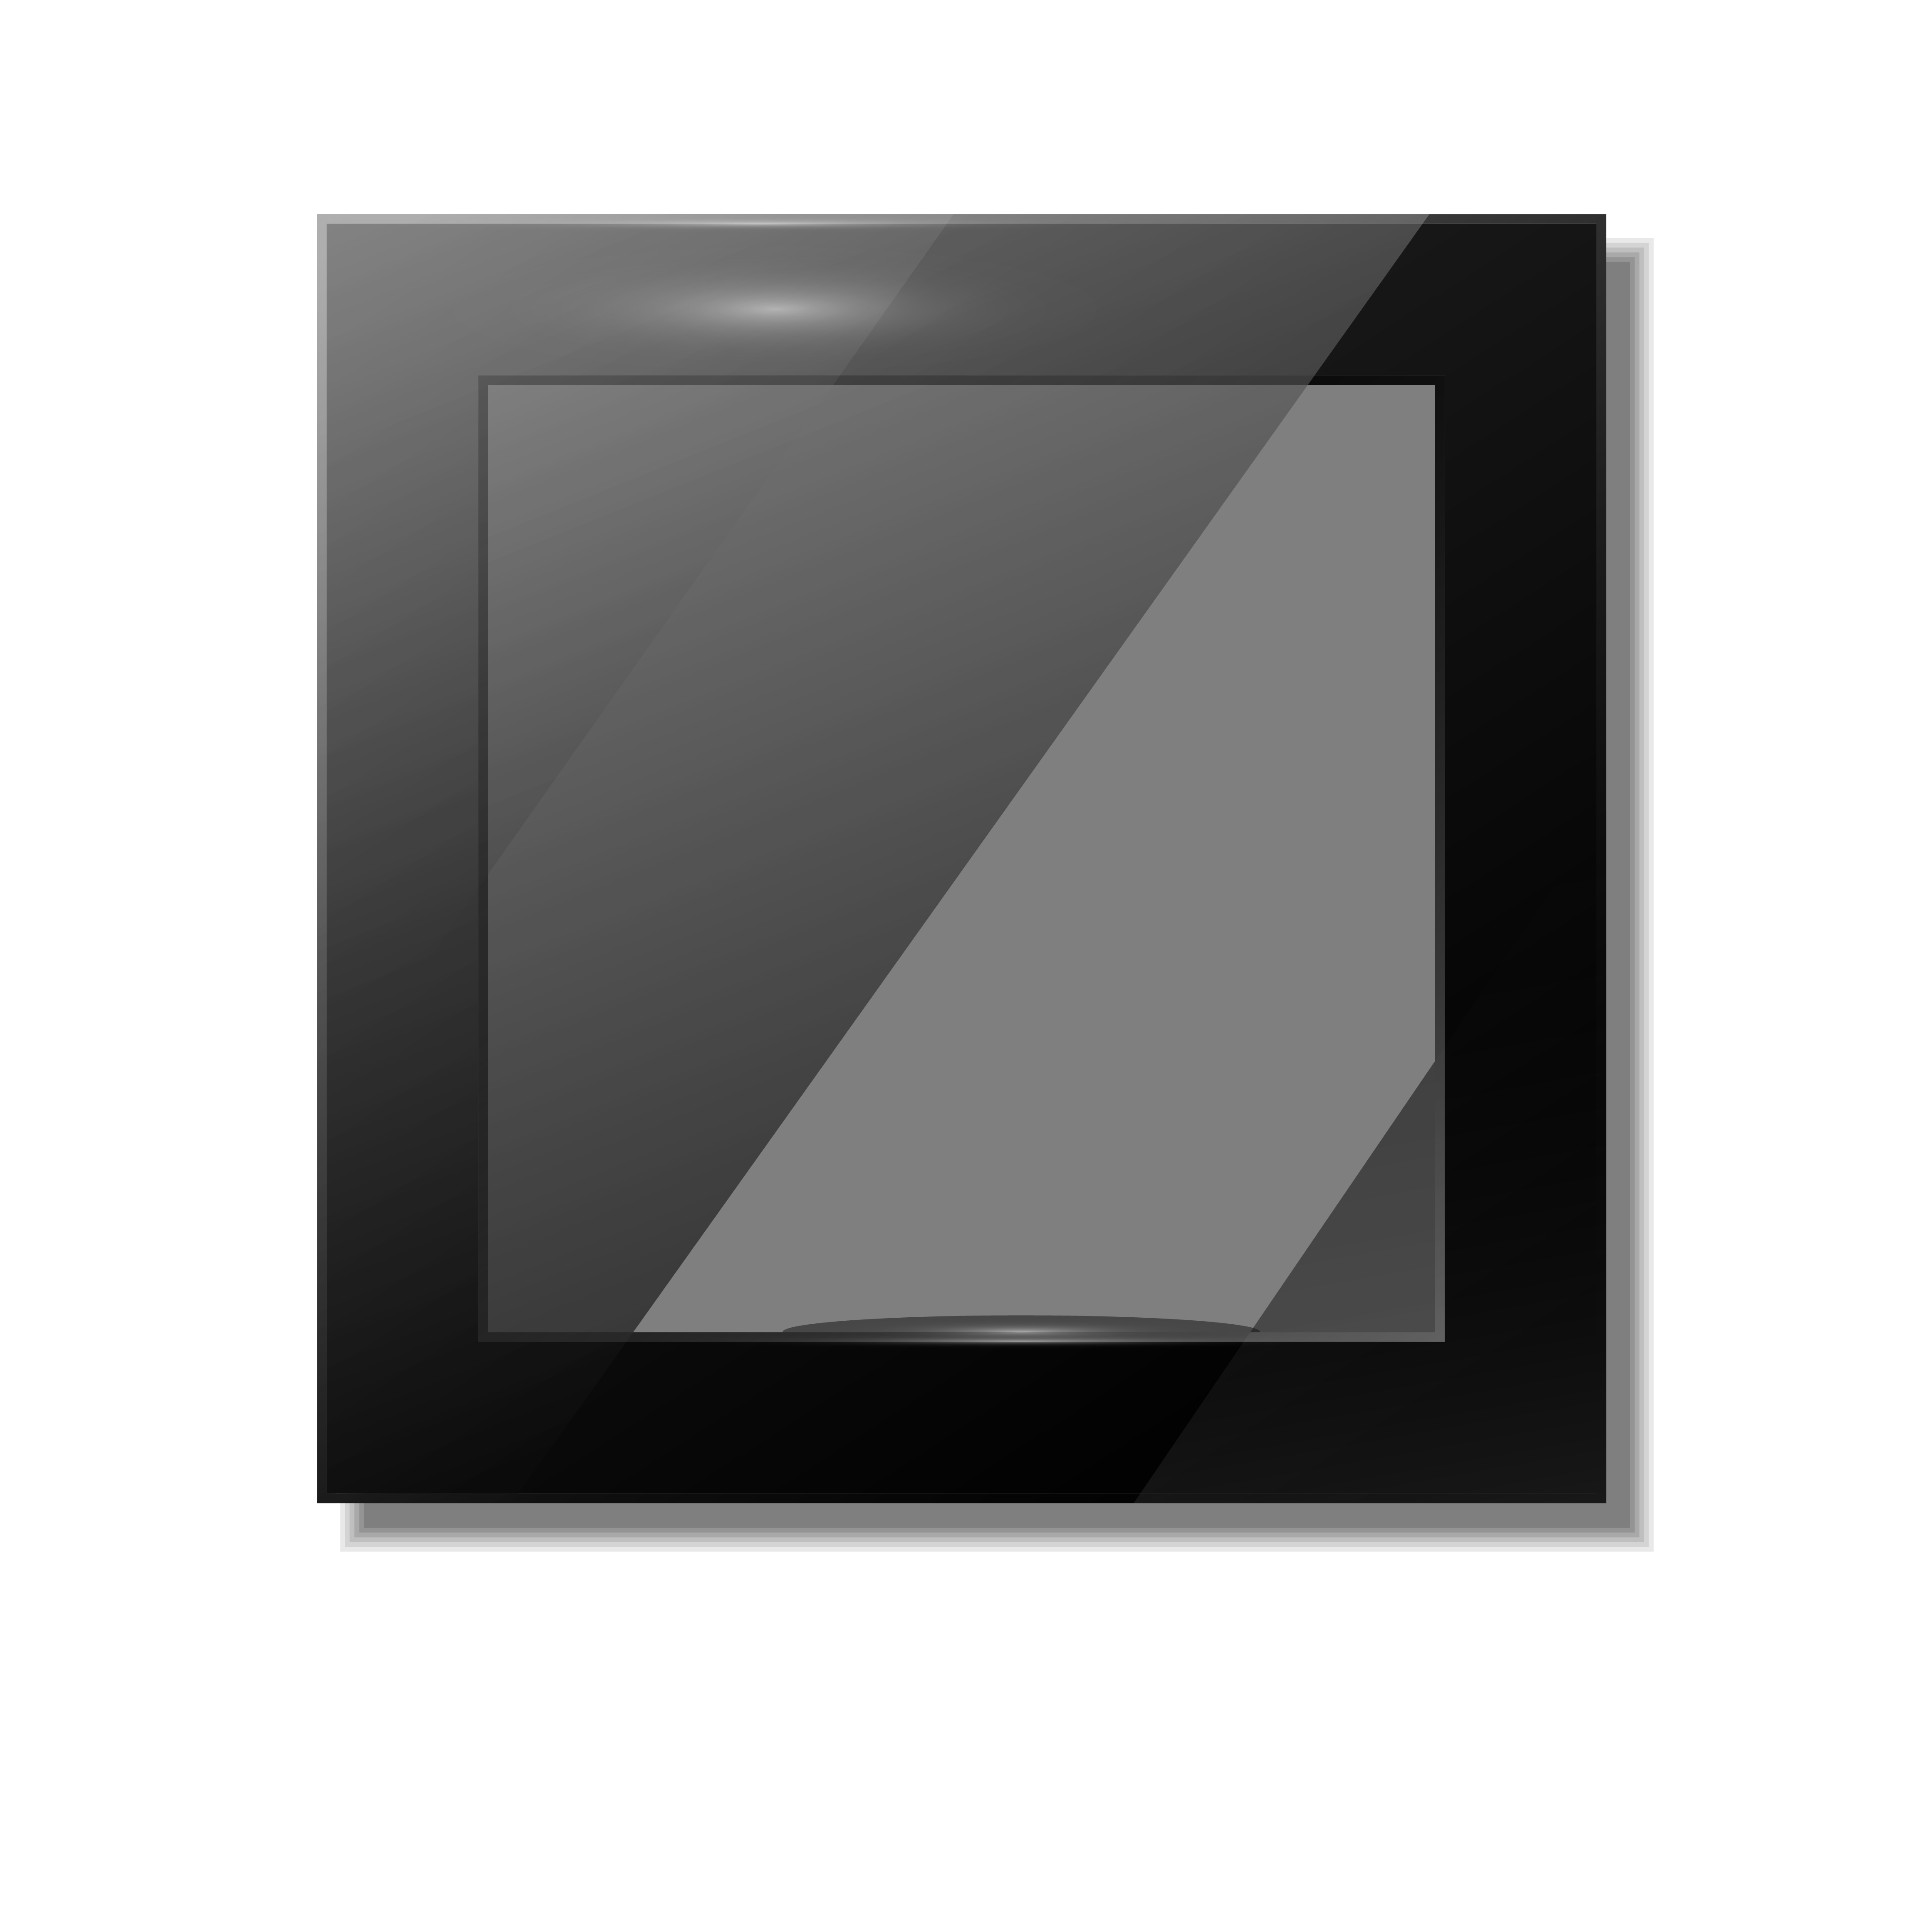 Transparent photography mirror. Black and white logo